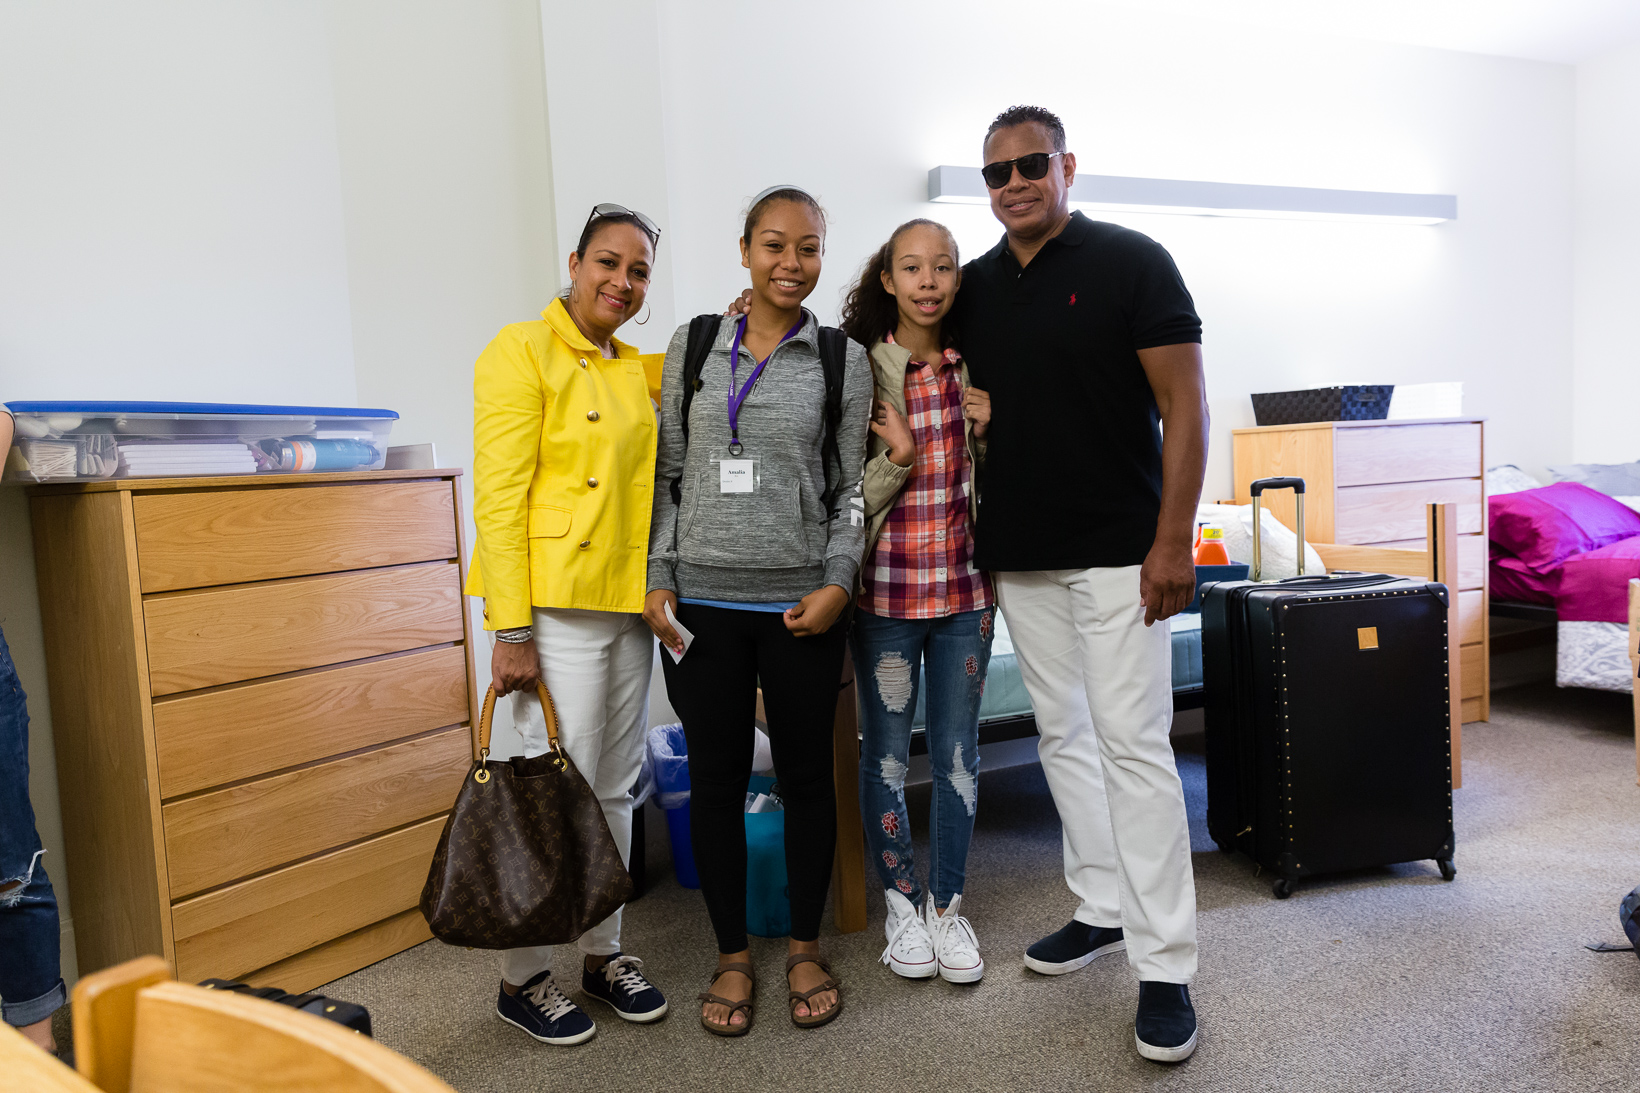 In Stearns Dorm, Amalia Rebekah Roy '21 embarks on life as an Amherst student. She's pictured with her proud family. Photo by Sk